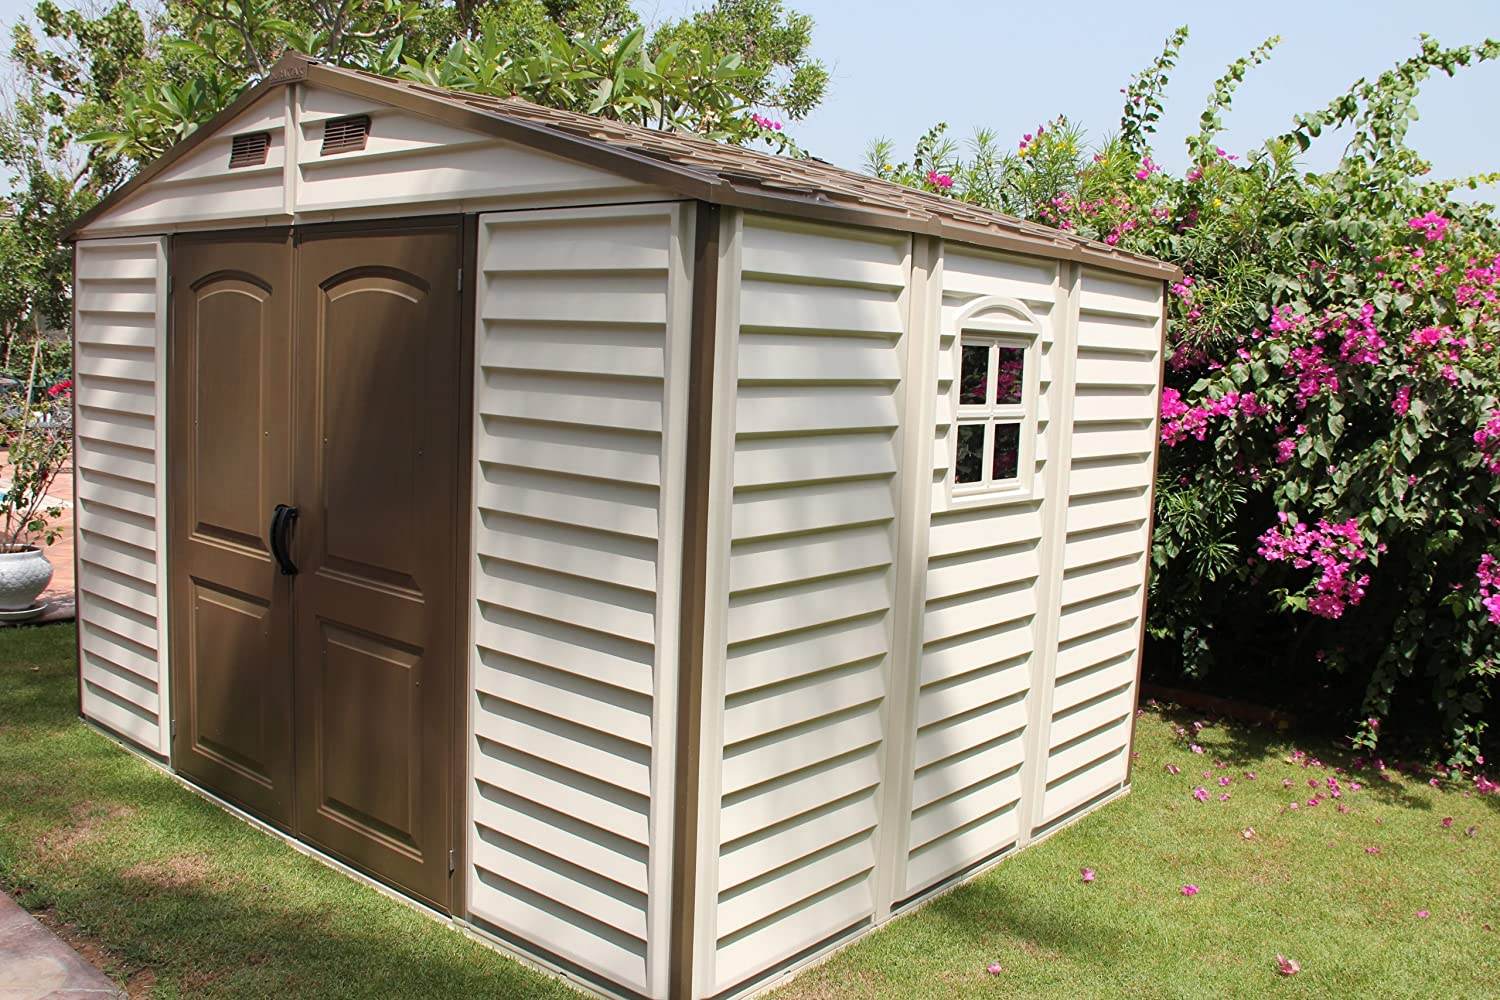 concept pictures striking supplies traditional vinyl ft gutters shed for white review youtuberhyoutubecom home products mini sheds amerimax gutter packs gutterm